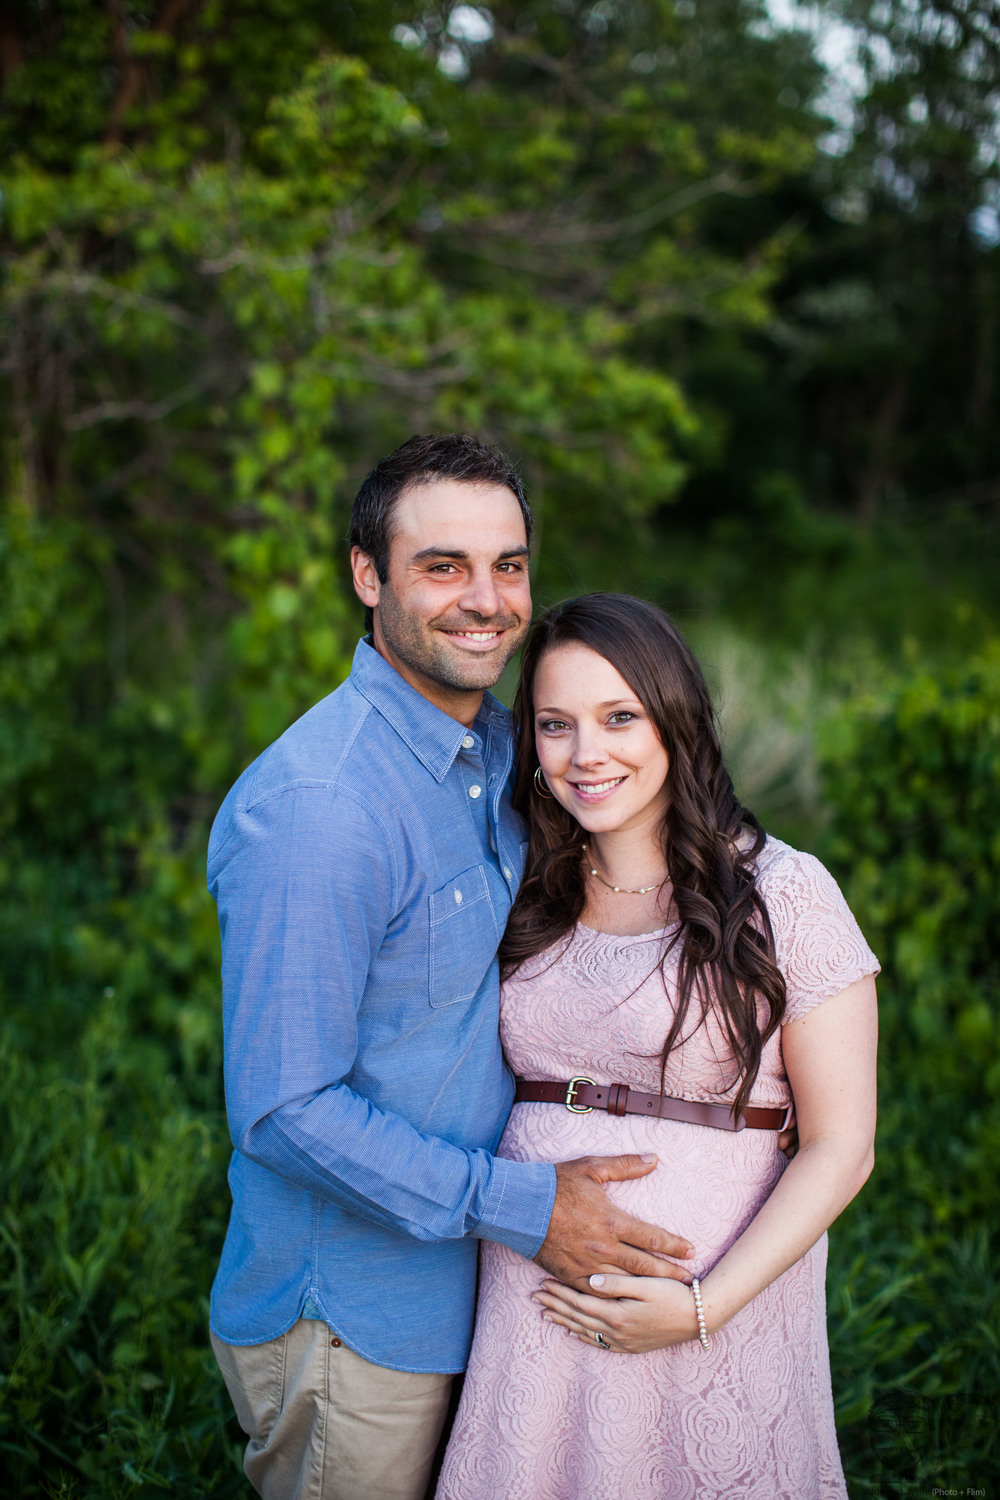 031Toronto photographers-Baby Bump-Jono & Laynie Co.jpg